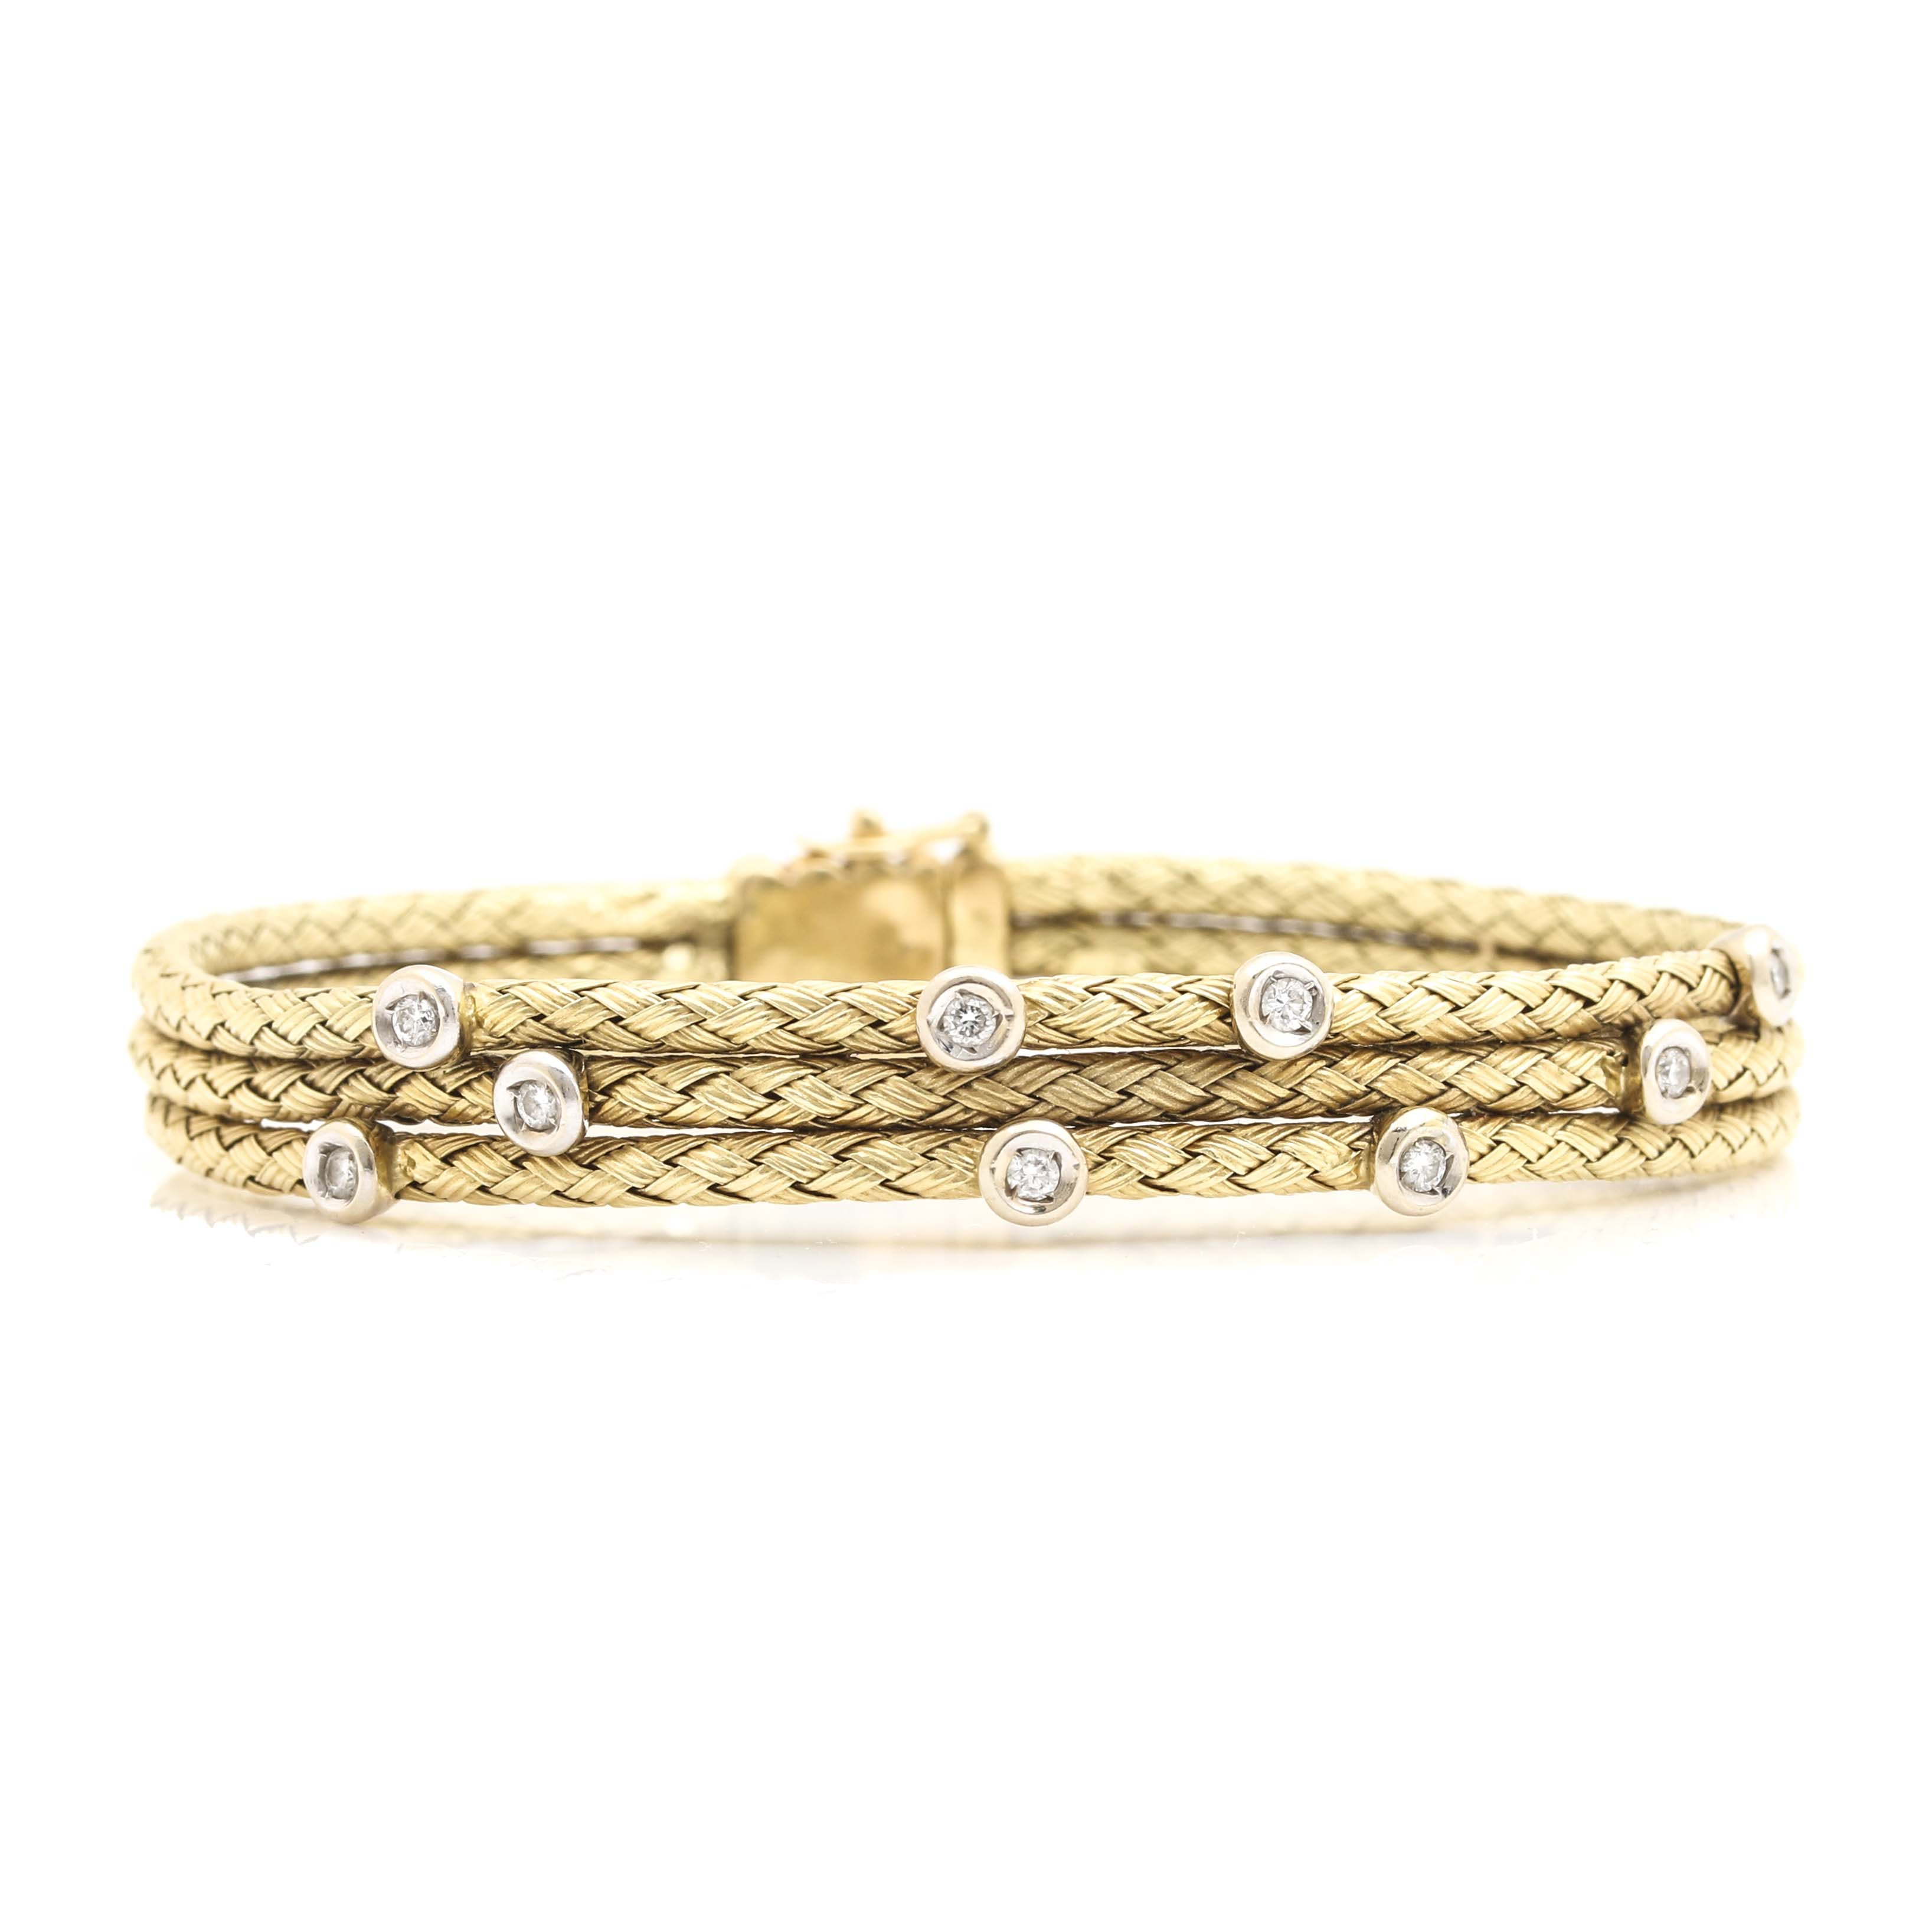 14K Yellow Gold Bracelet with Diamond Accents